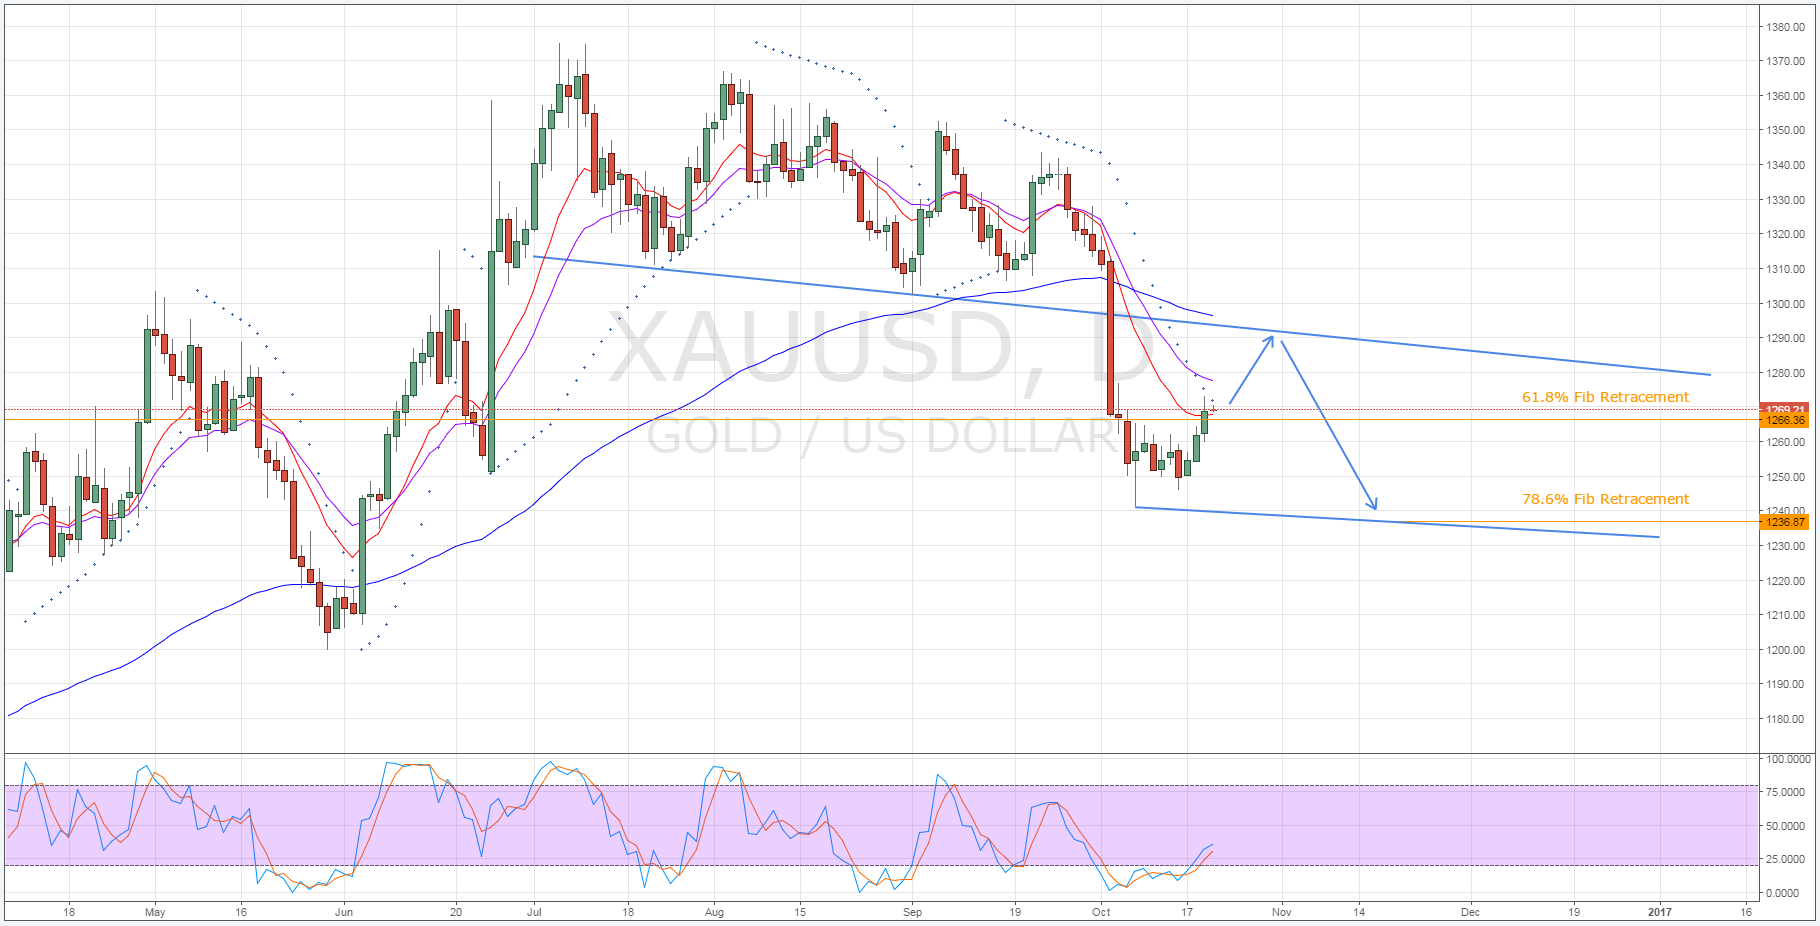 XAU/USD Daily